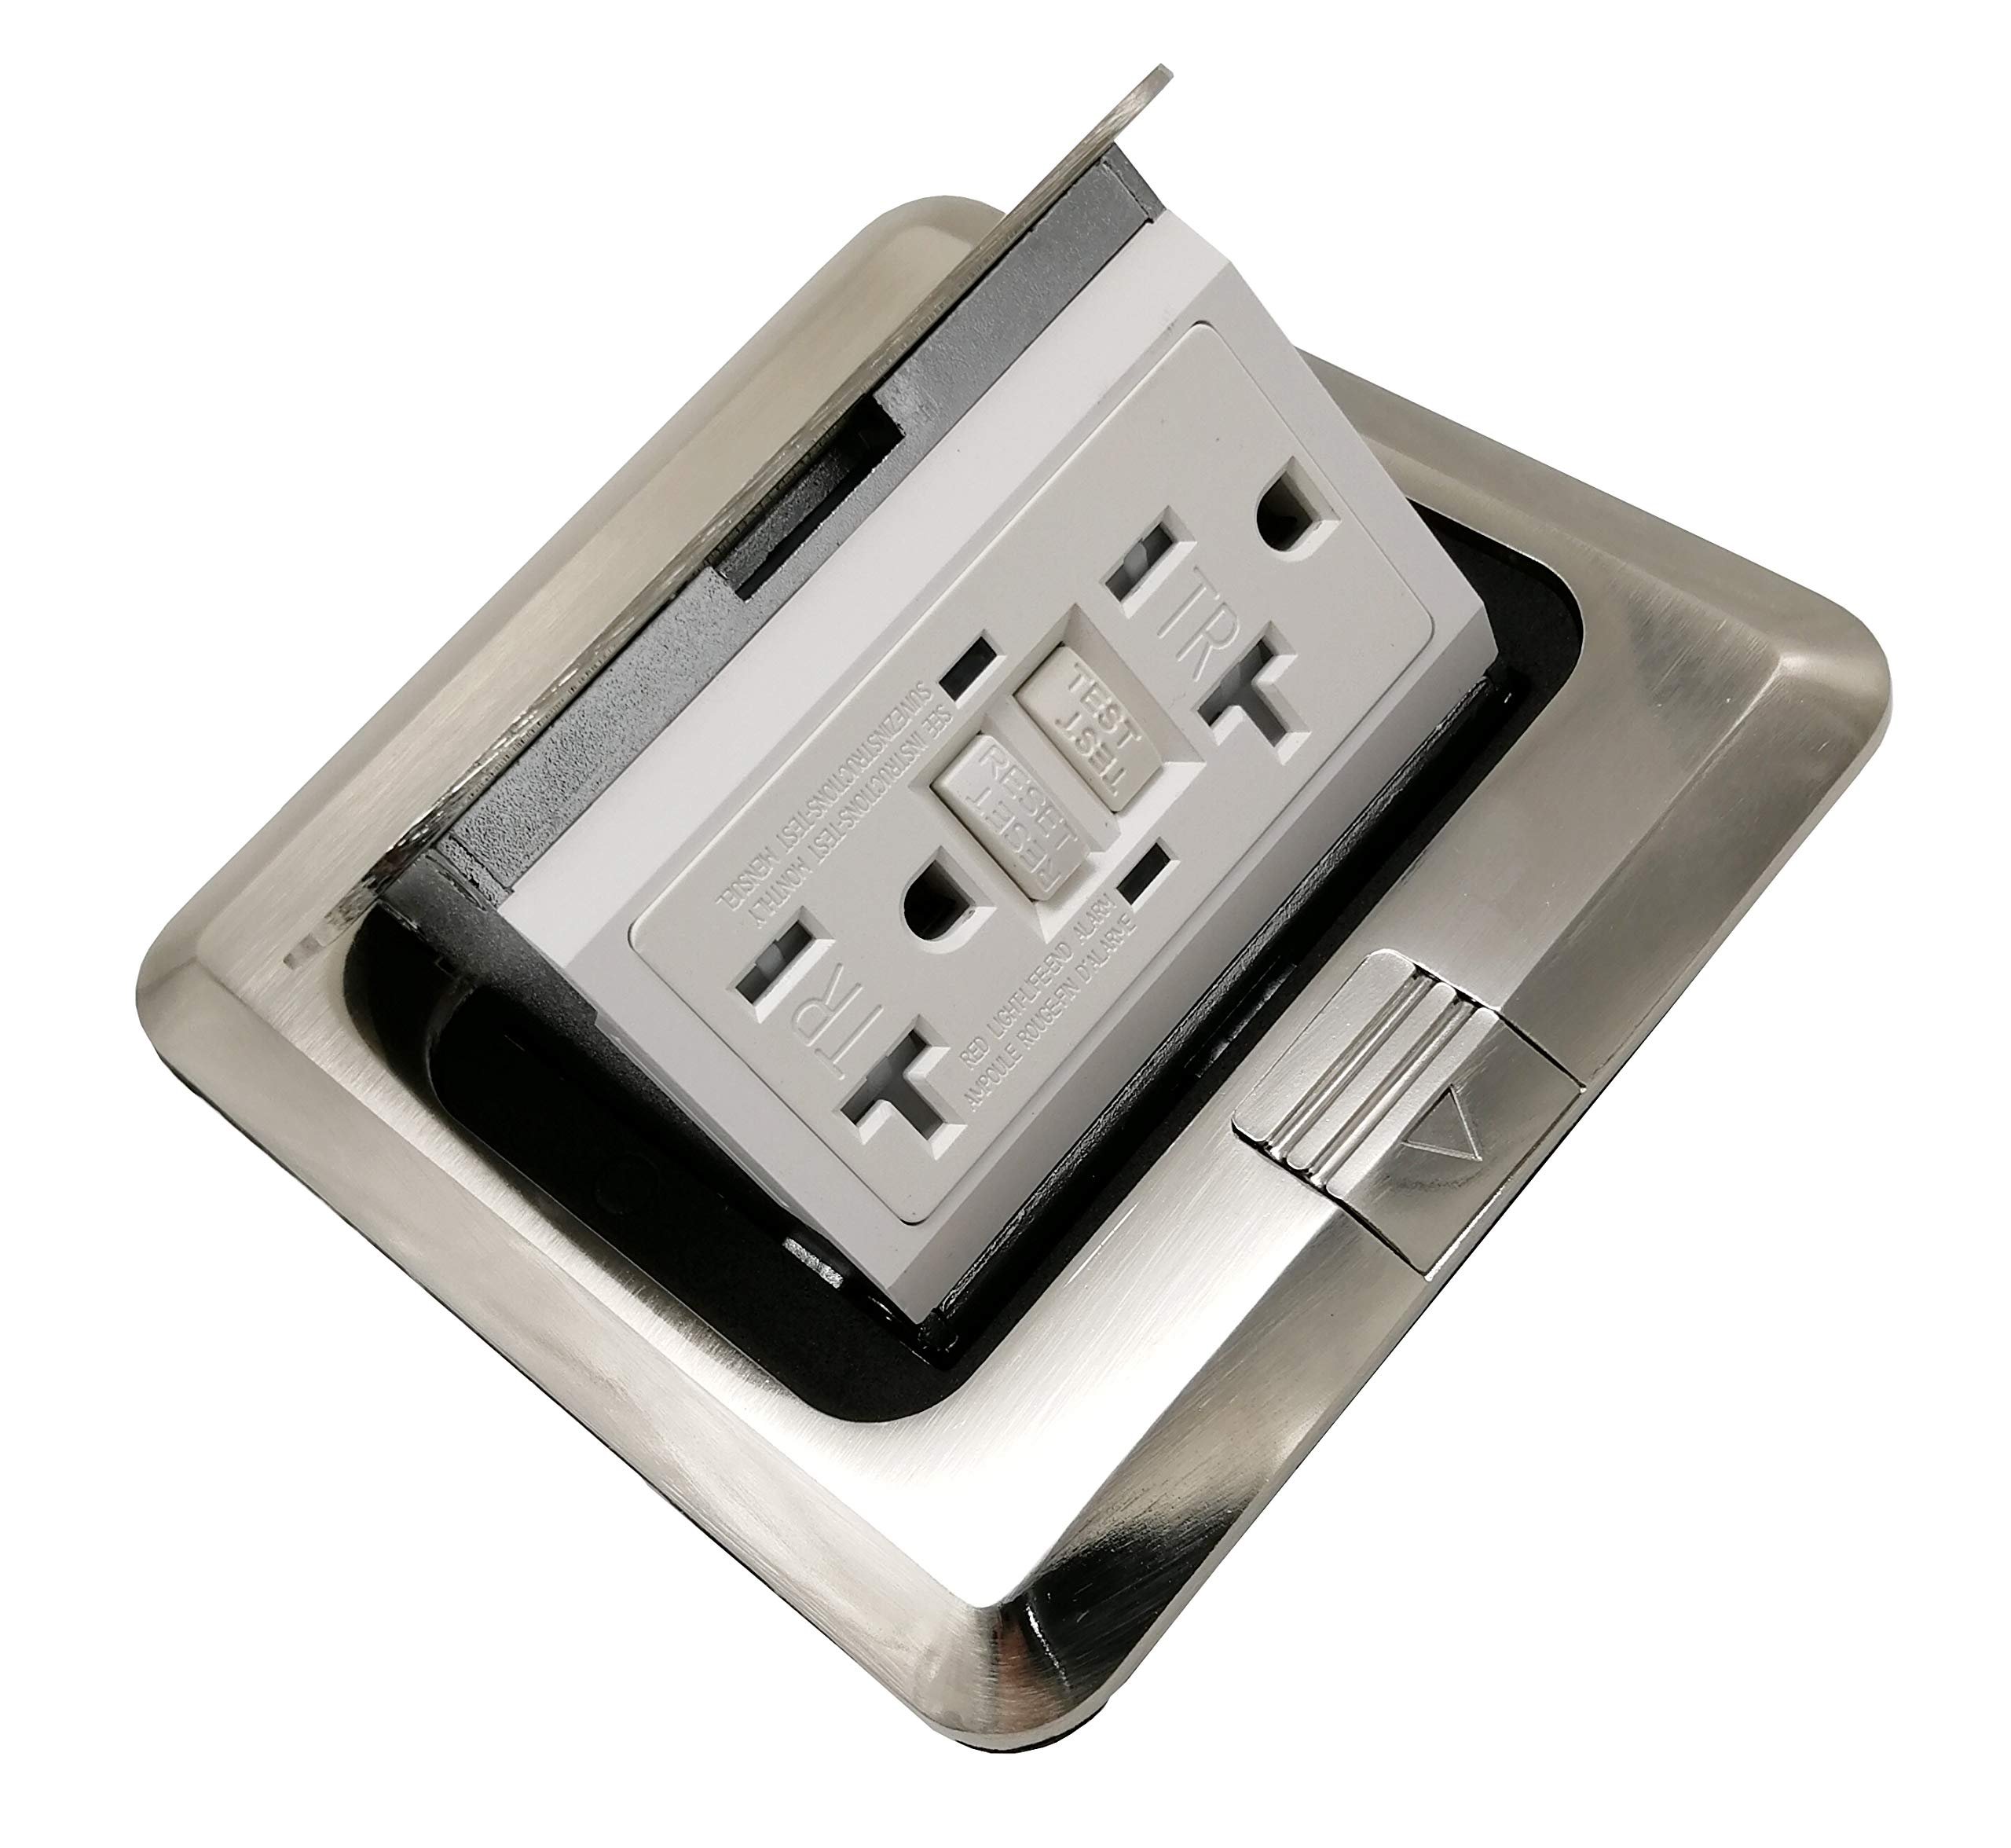 Pop Up Receptacle Floor Outlet Countertop Box With W/20 A GFI Duplex Receptacle, Brass, Nickle Plating by Powertech